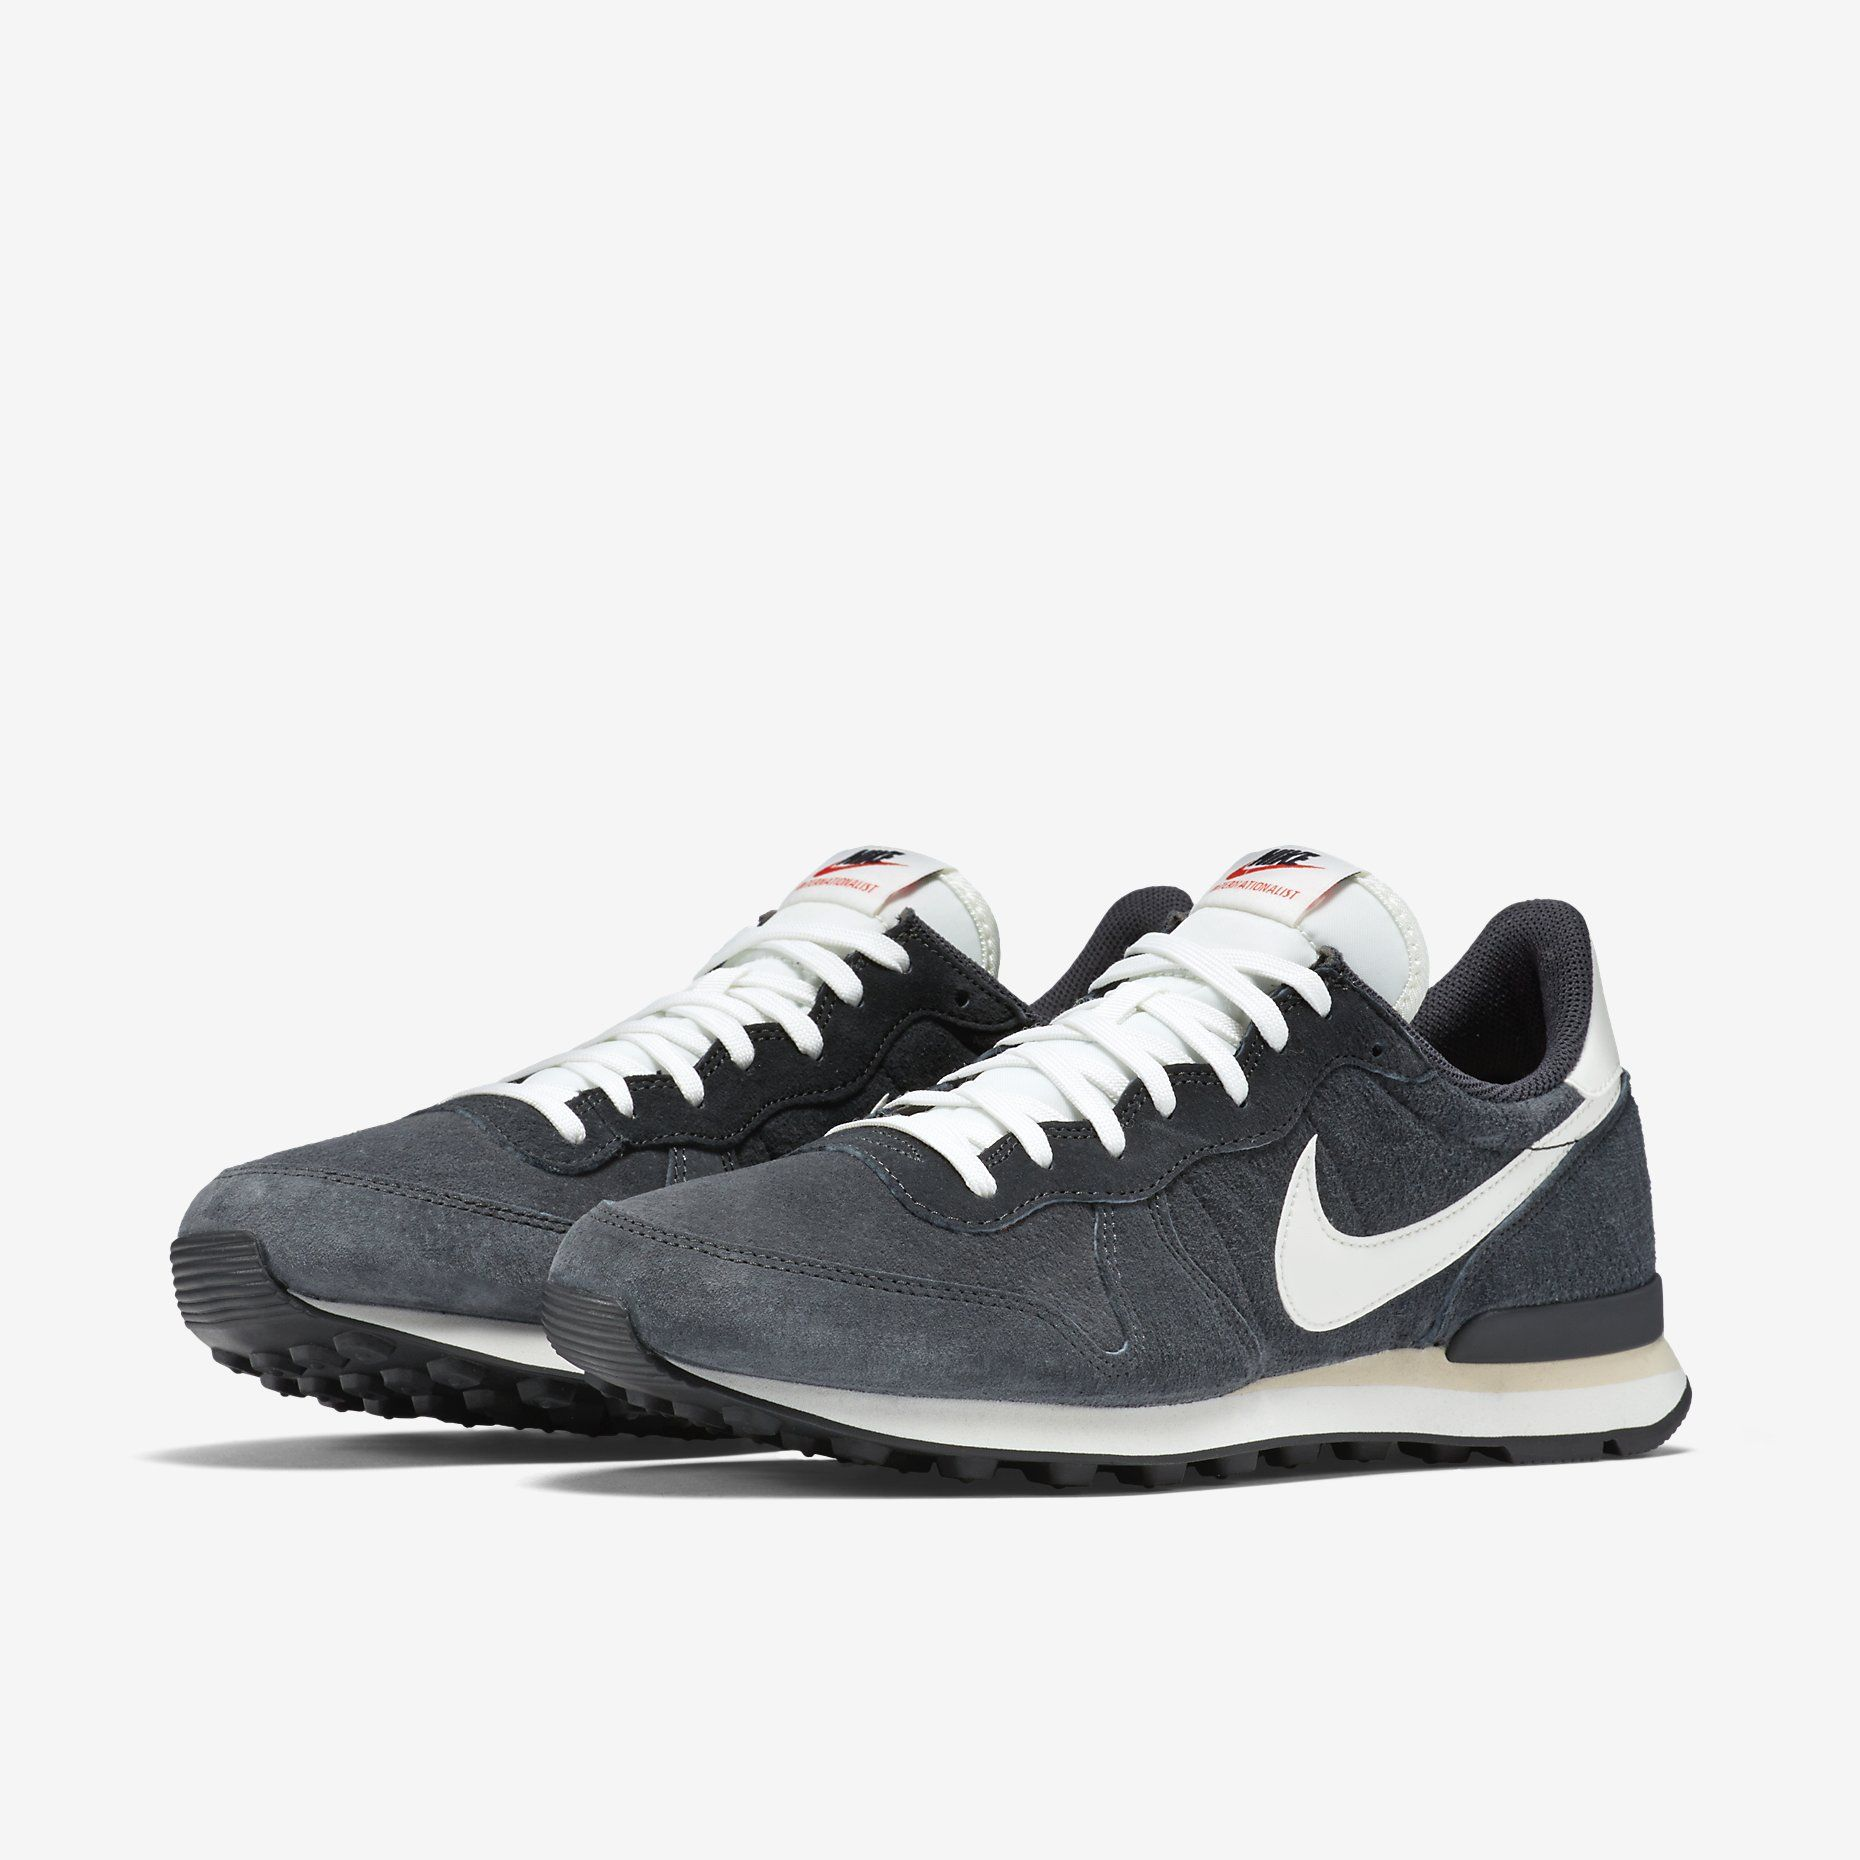 best sneakers d9807 1e564 Nike Internationalist PGS Leather Men s Shoe. Nike Store